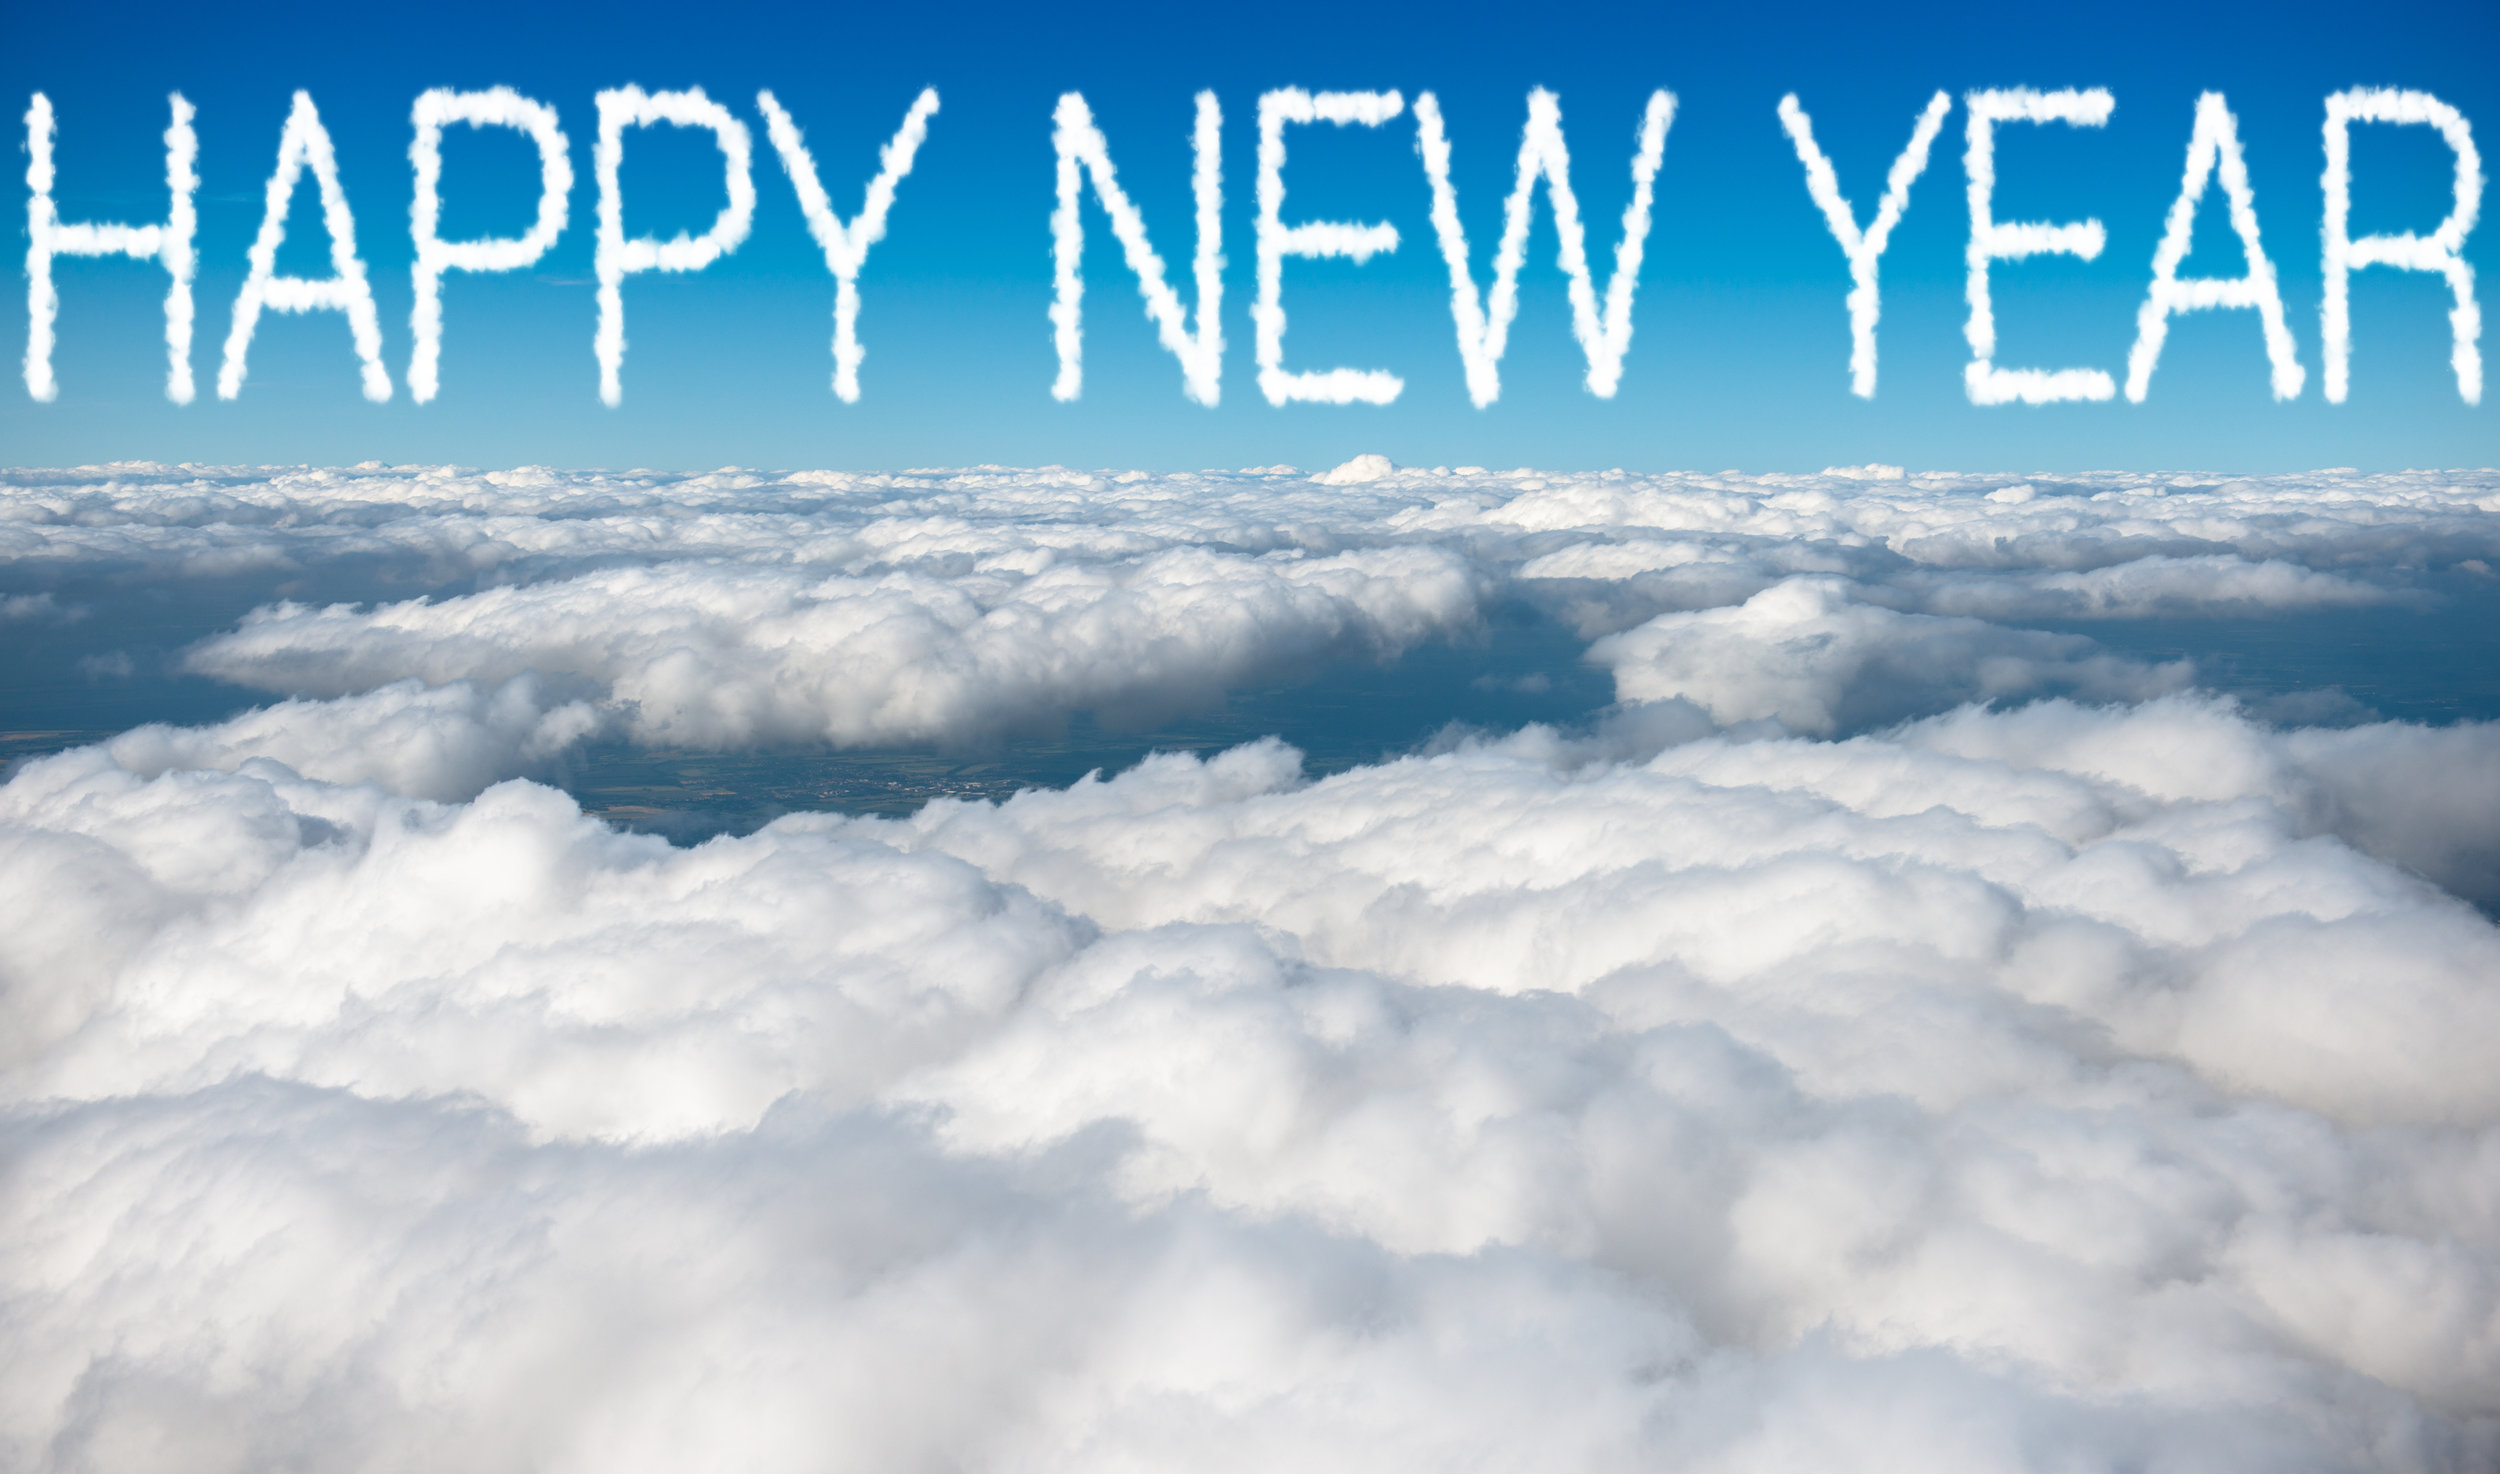 new-year-clouds-text-Above-the-sky-456542705_7232x4263 (1).jpeg